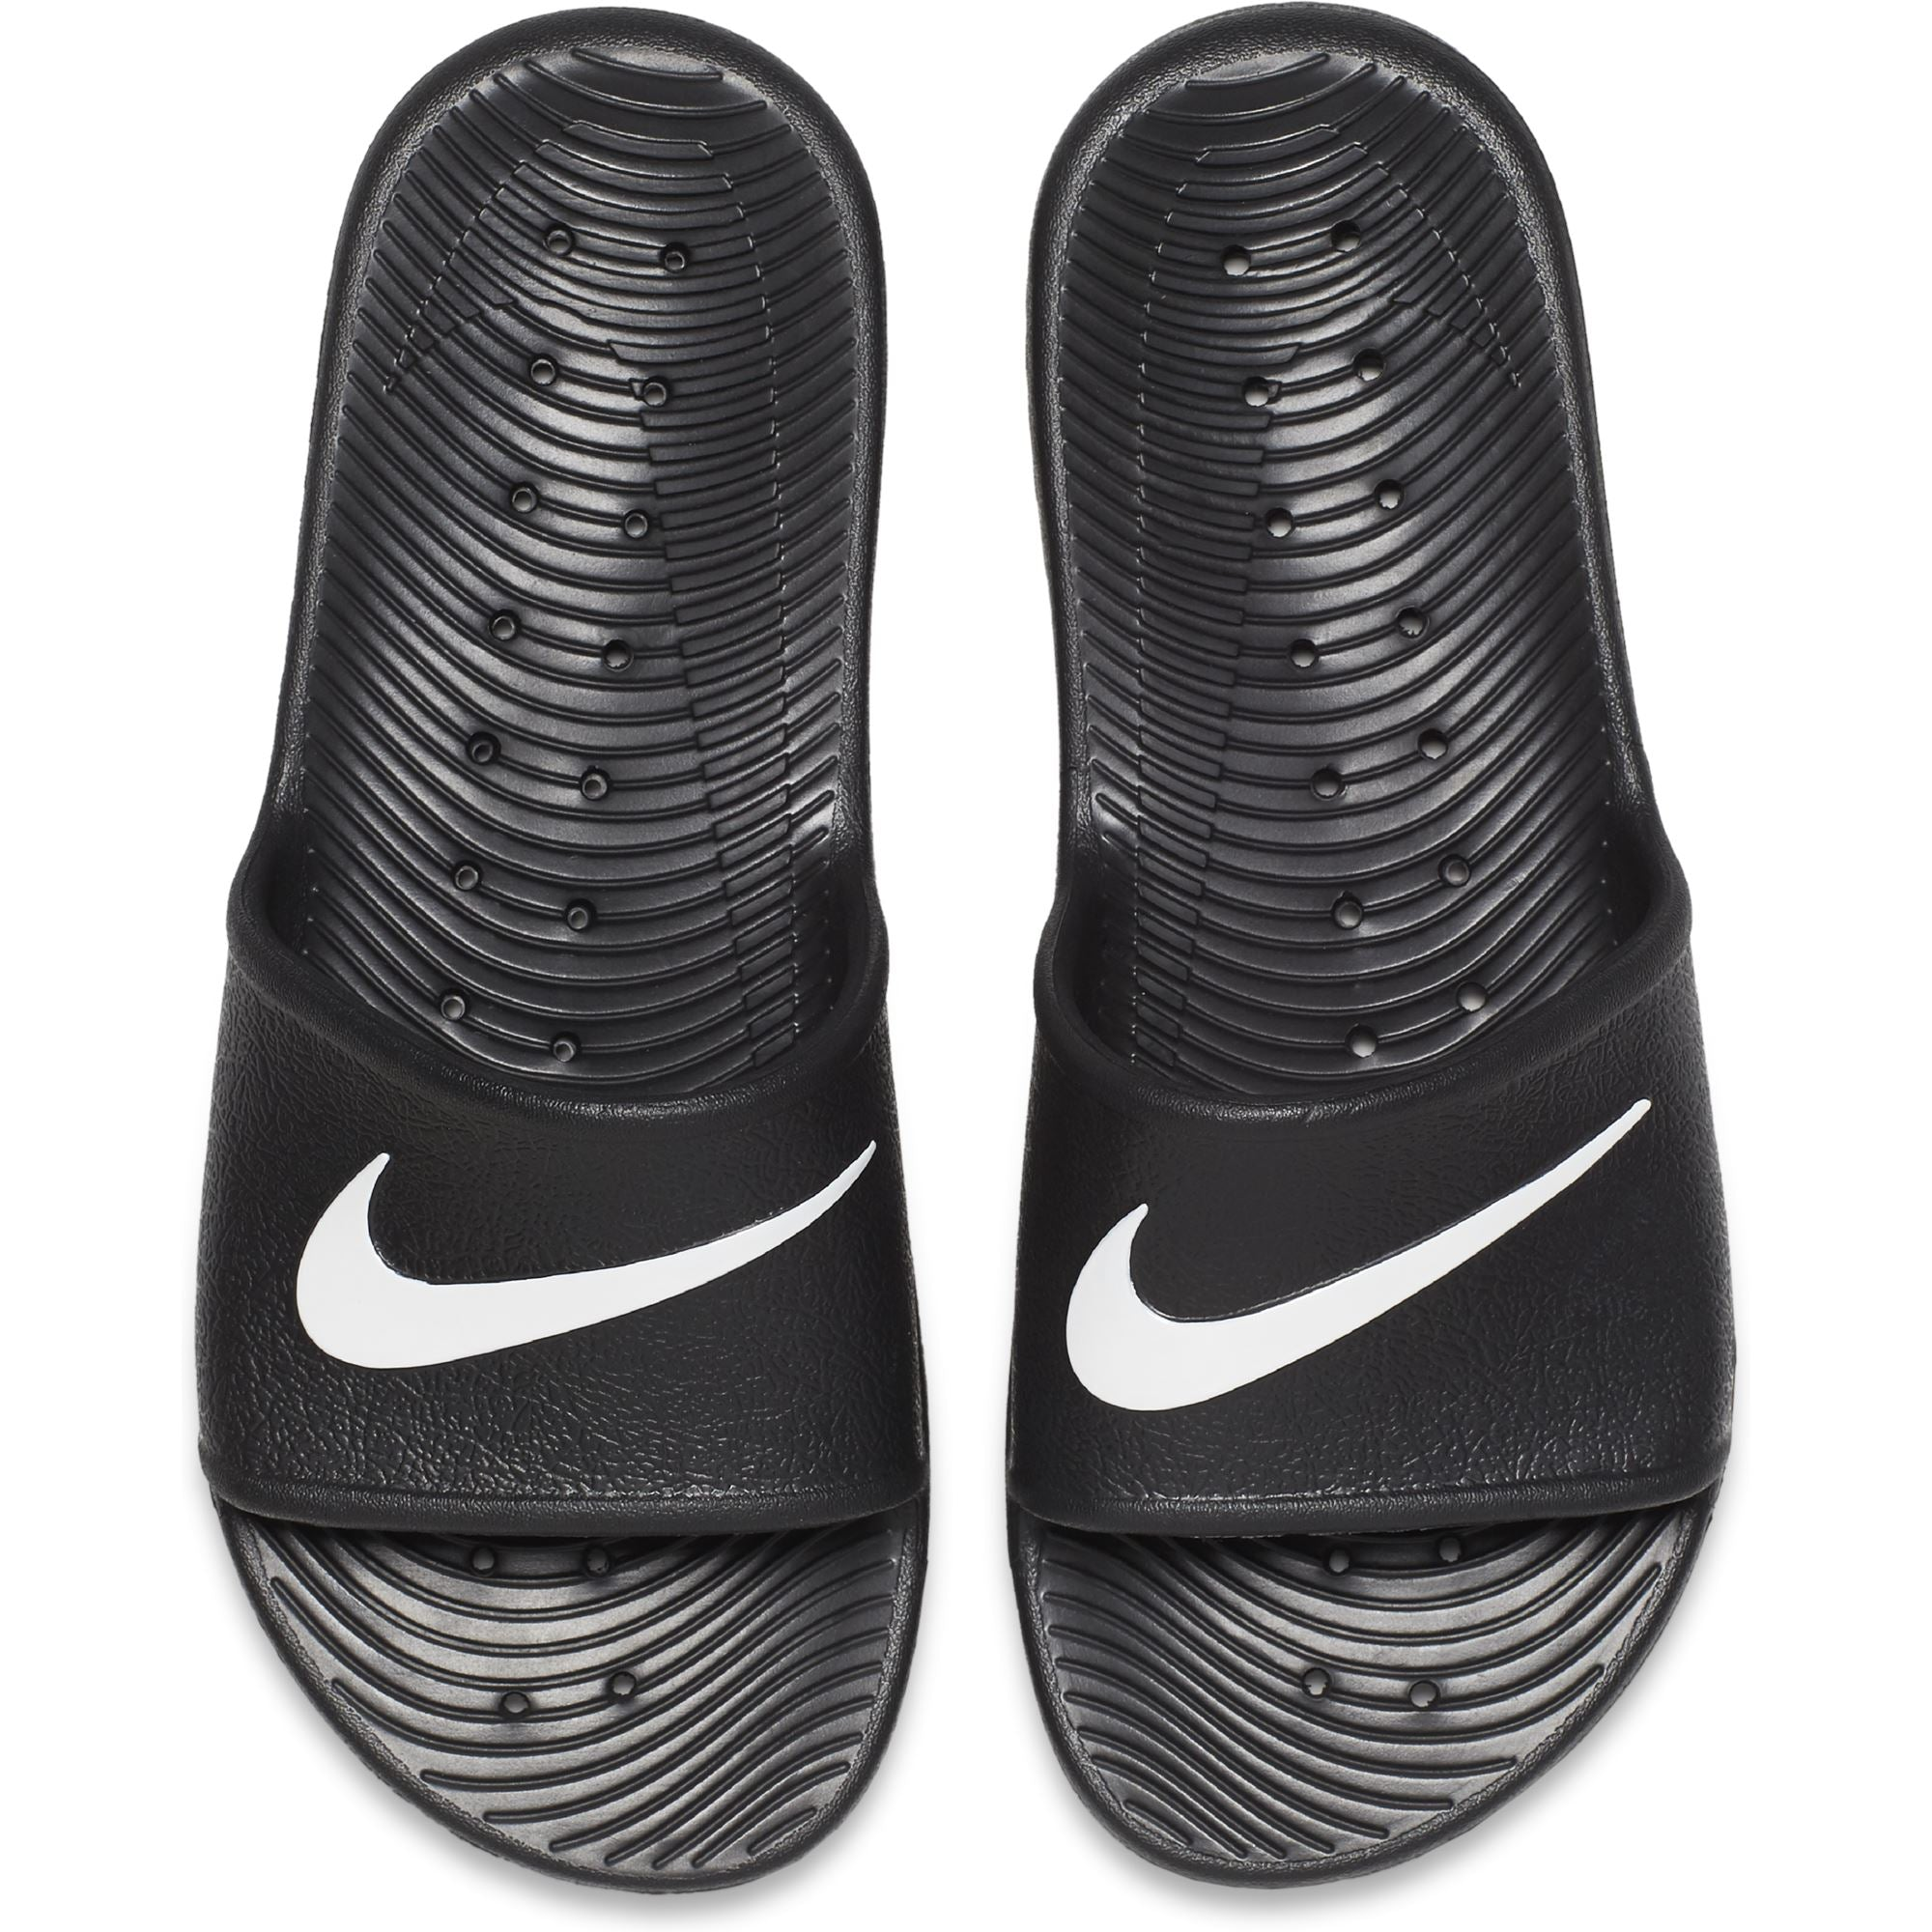 Nike Mens Kawa Shower Slide - Black/White Q3NIKE Nike